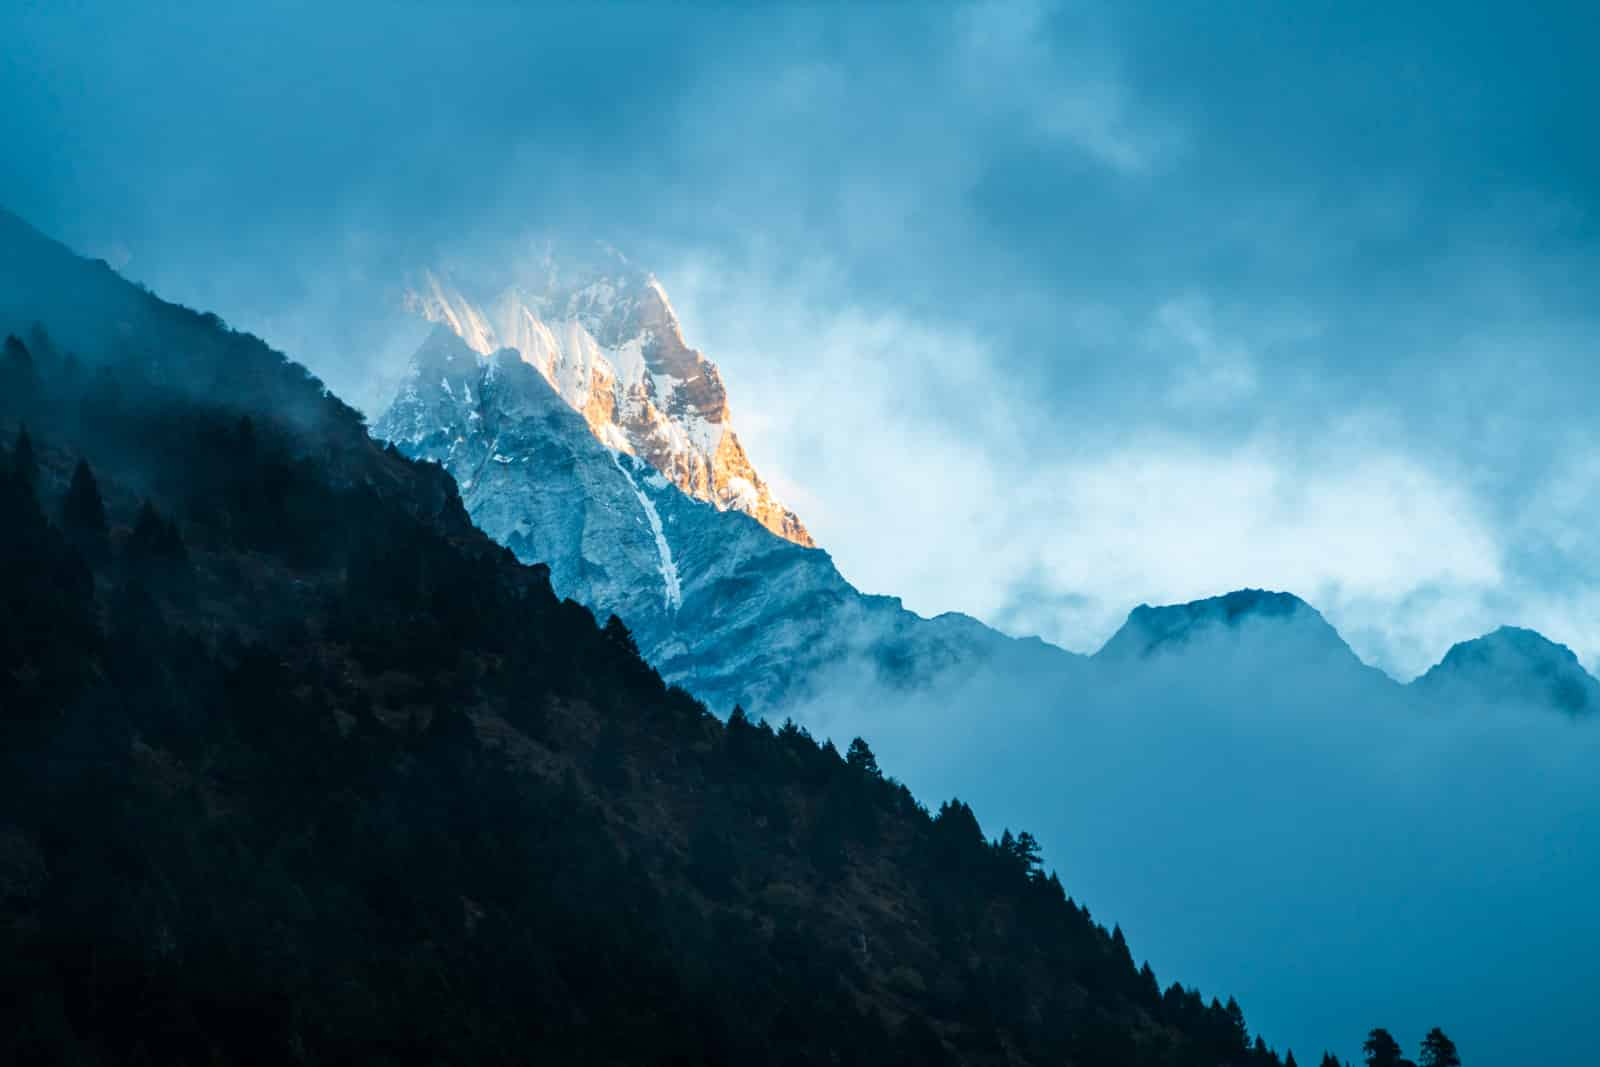 Guide to the Gasa - Laya trek in Bhutan - Mountain peeking through the clouds at sunrise - Lost With Purpose travel blog